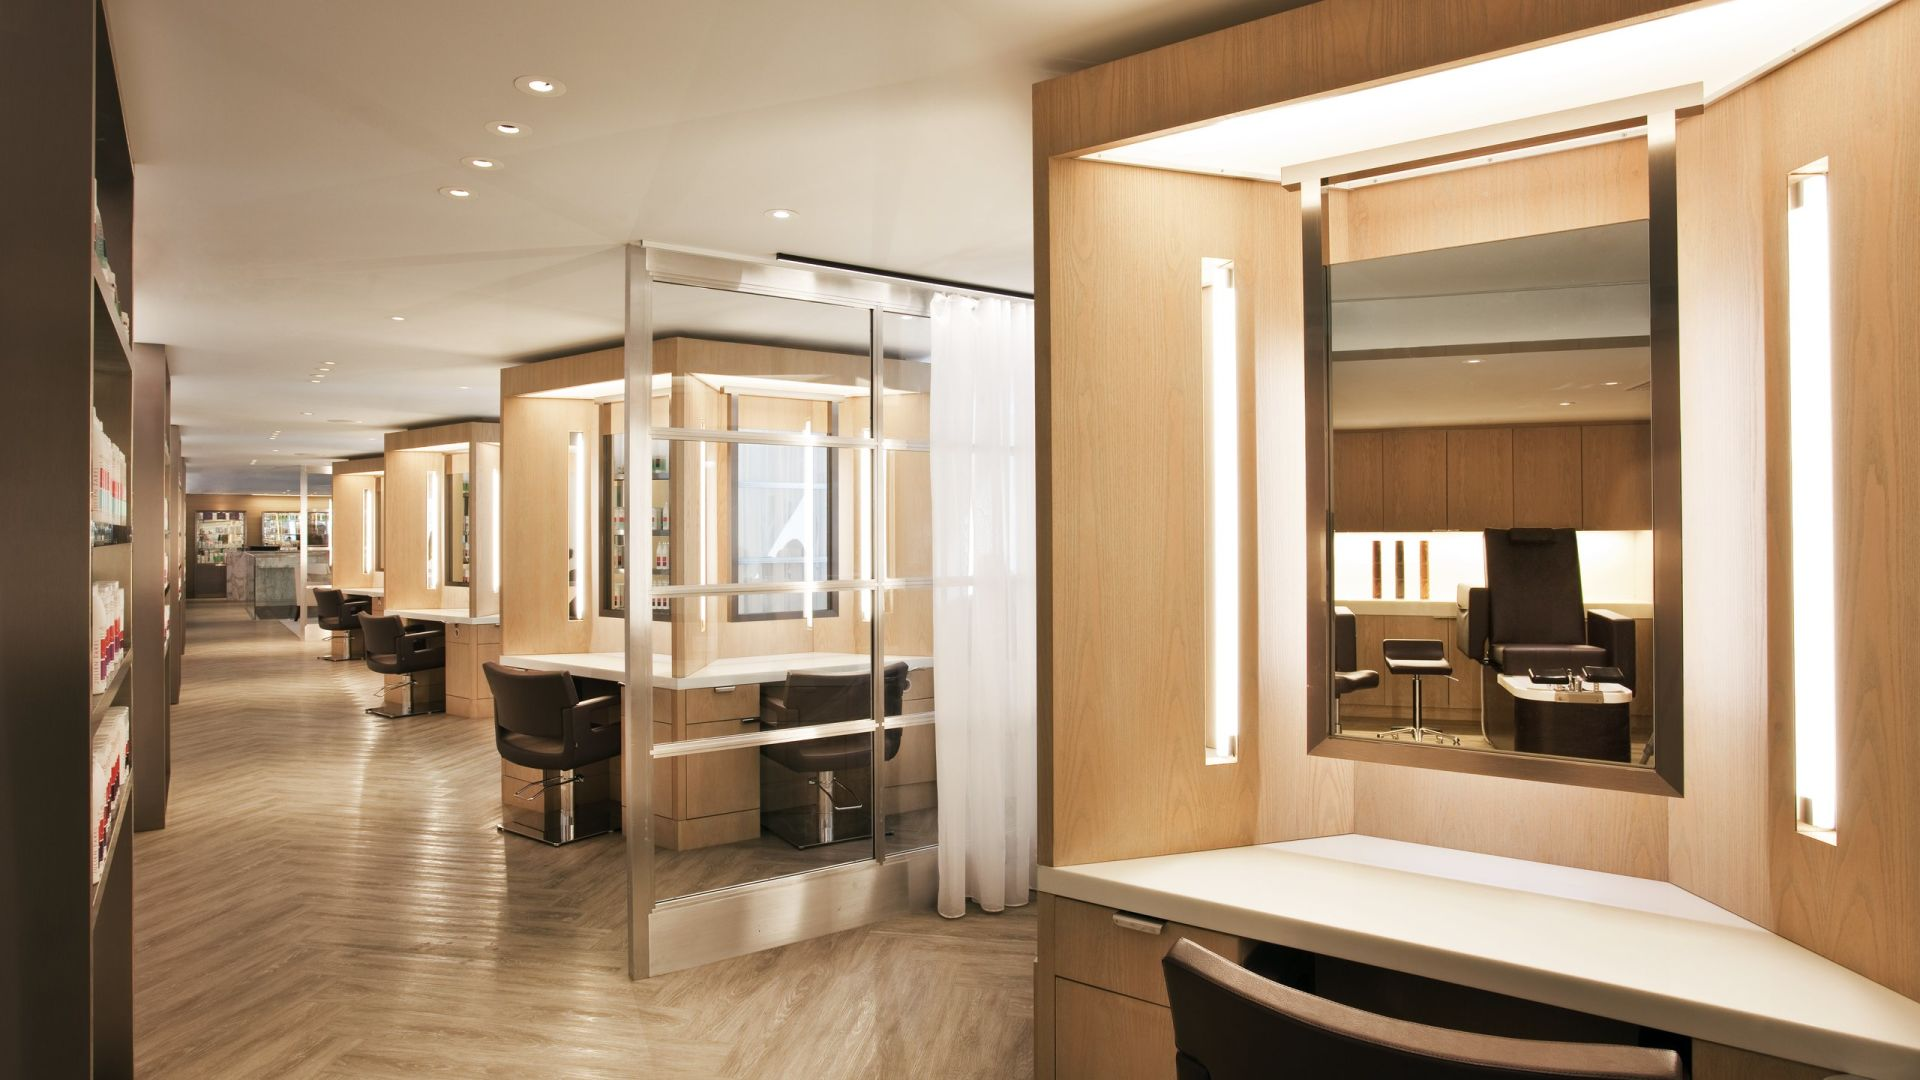 Hairdressing Stations | Julien Farel Restore Salon & Spa | Loews Regency New York Hotel